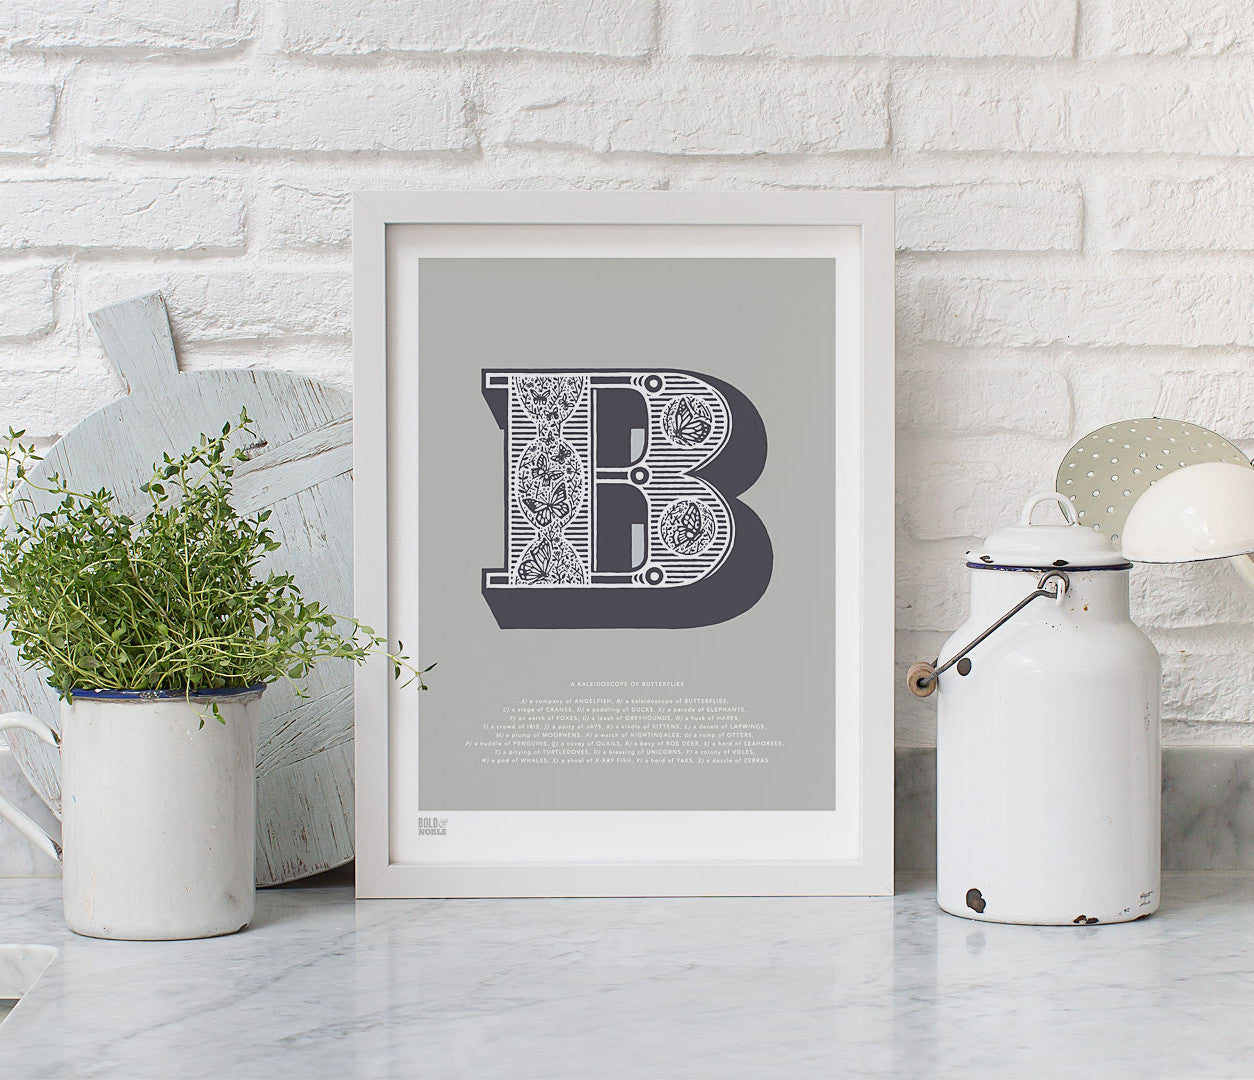 Pictures and Wall Art, Screen Printed Illustrated Letter B design in putty grey